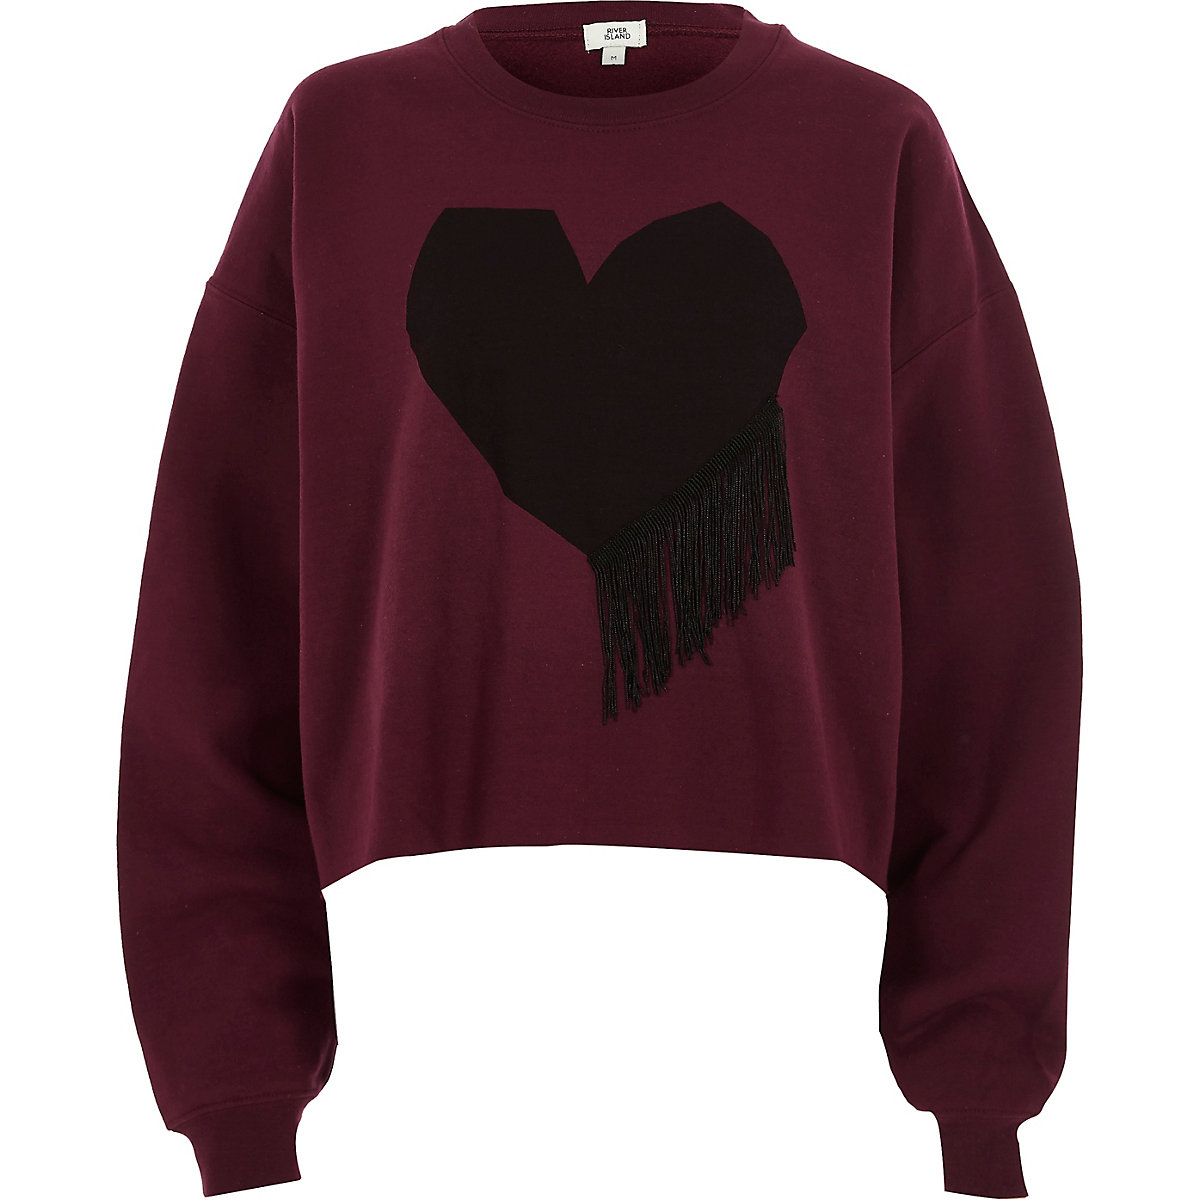 Red heart print fringe sweatshirt